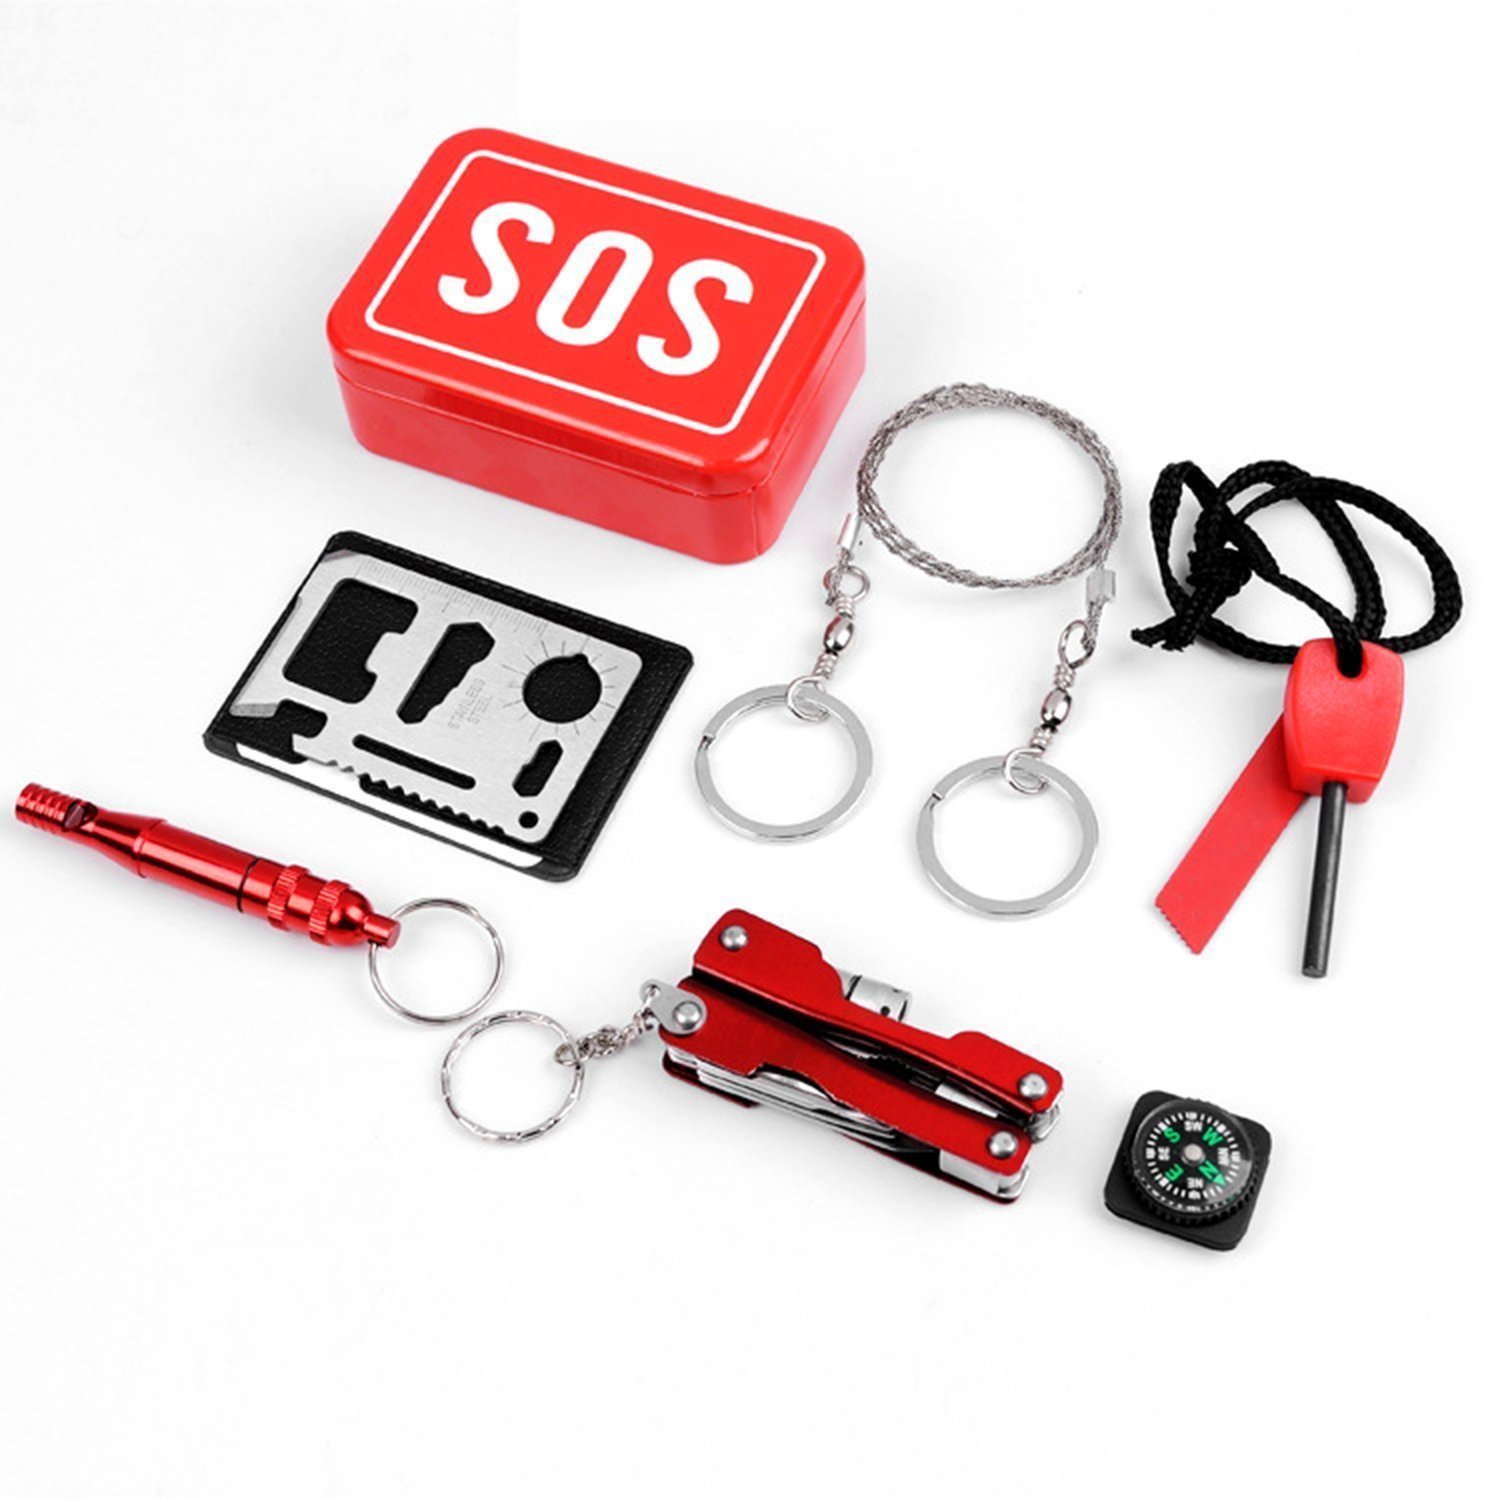 Emergency Kit/Survival Kit/First Aid Kits Tools Outdoor Emergency & Survival Kit Tool Gear Bundle Multitool Pliers with Flashlight Wire Saw/Fire Starter/Compass/Emergency Whistle/Pocket Tool